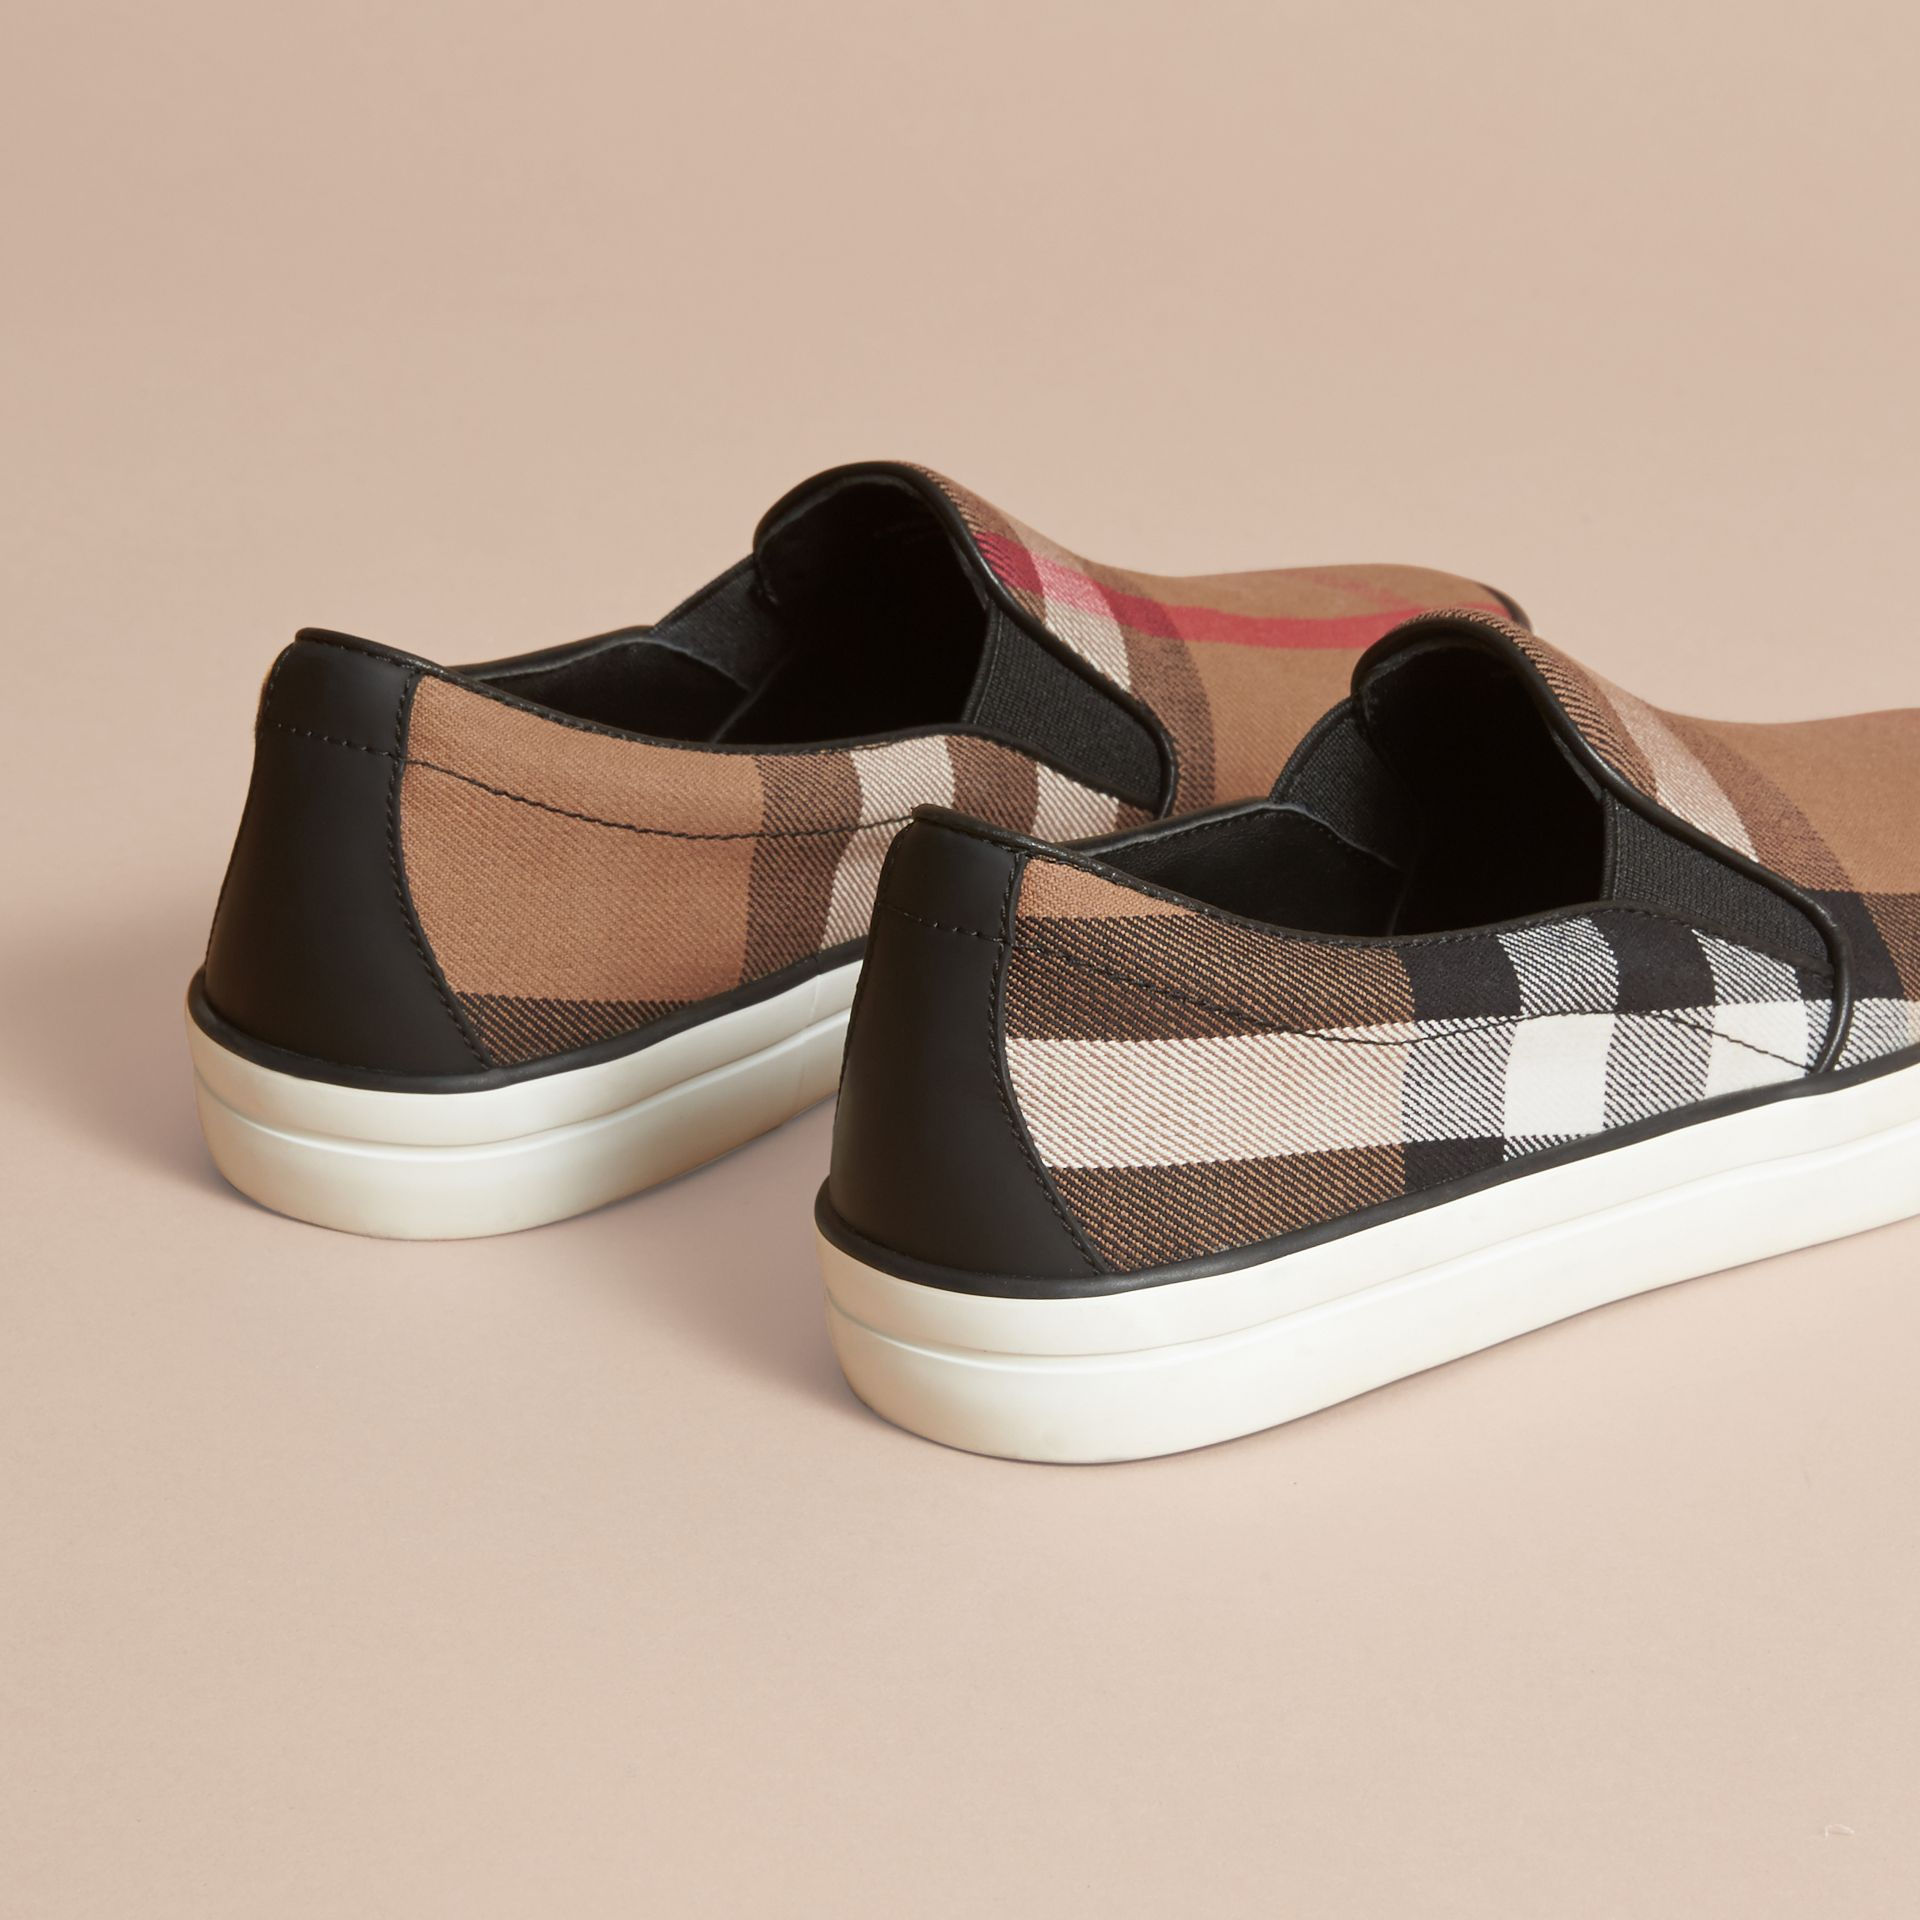 House Check Cotton and Leather Slip-on Trainers in Classic - Women | Burberry - gallery image 3